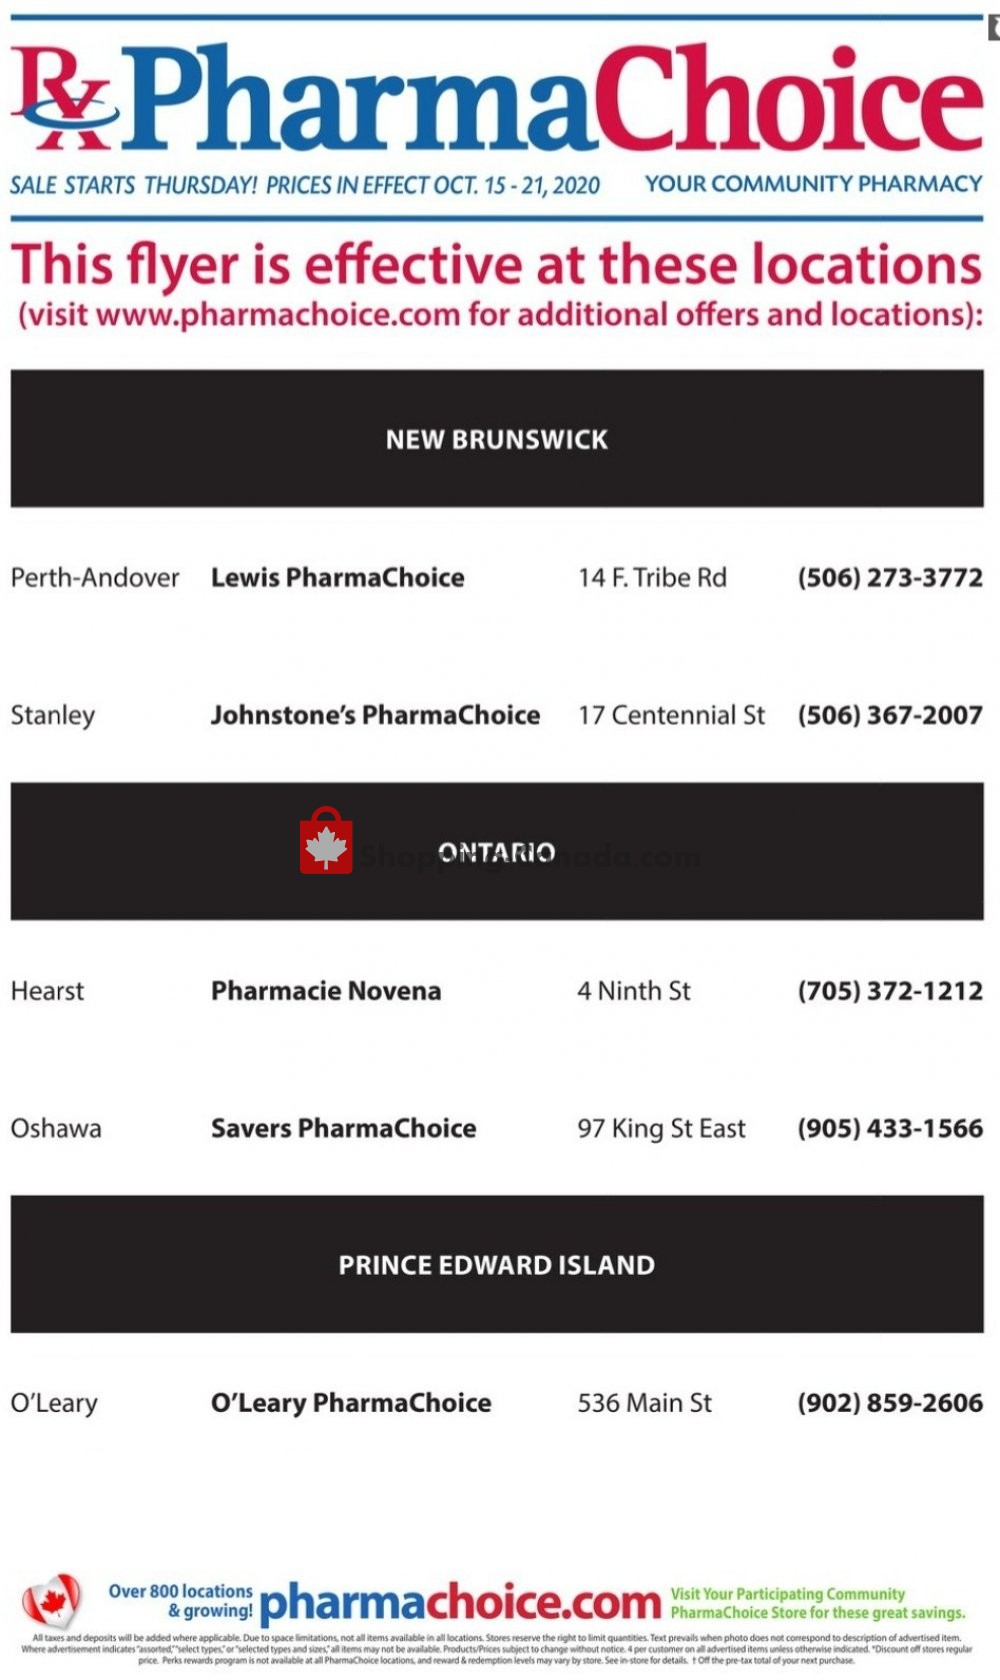 Flyer Pharma Choice Canada - from Thursday October 15, 2020 to Wednesday October 21, 2020